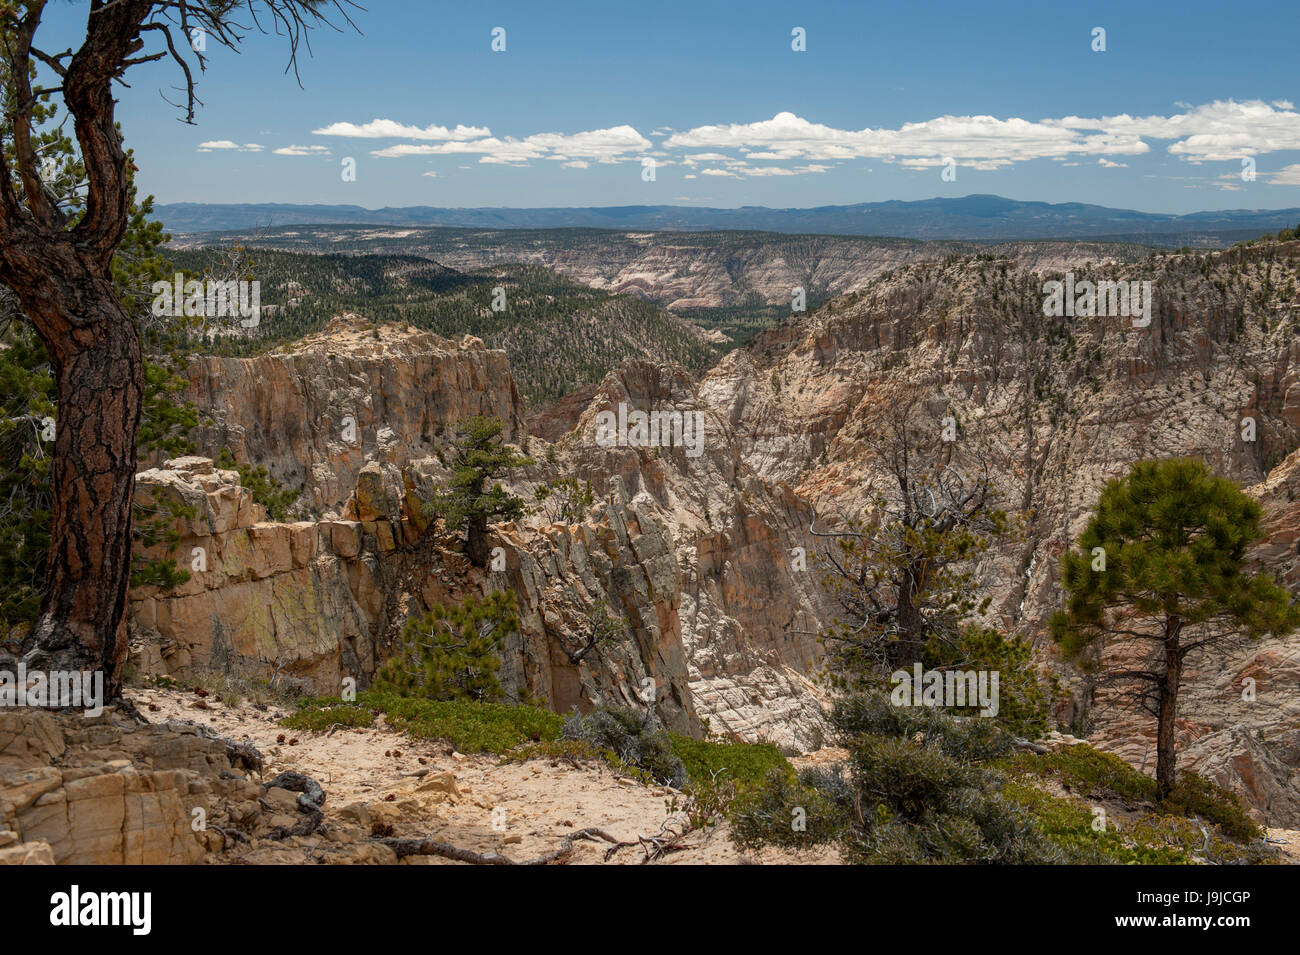 Death Hollow, as seen from Hell's Backbone on the historic road between Escalante and Boulder, Utah - Stock Image